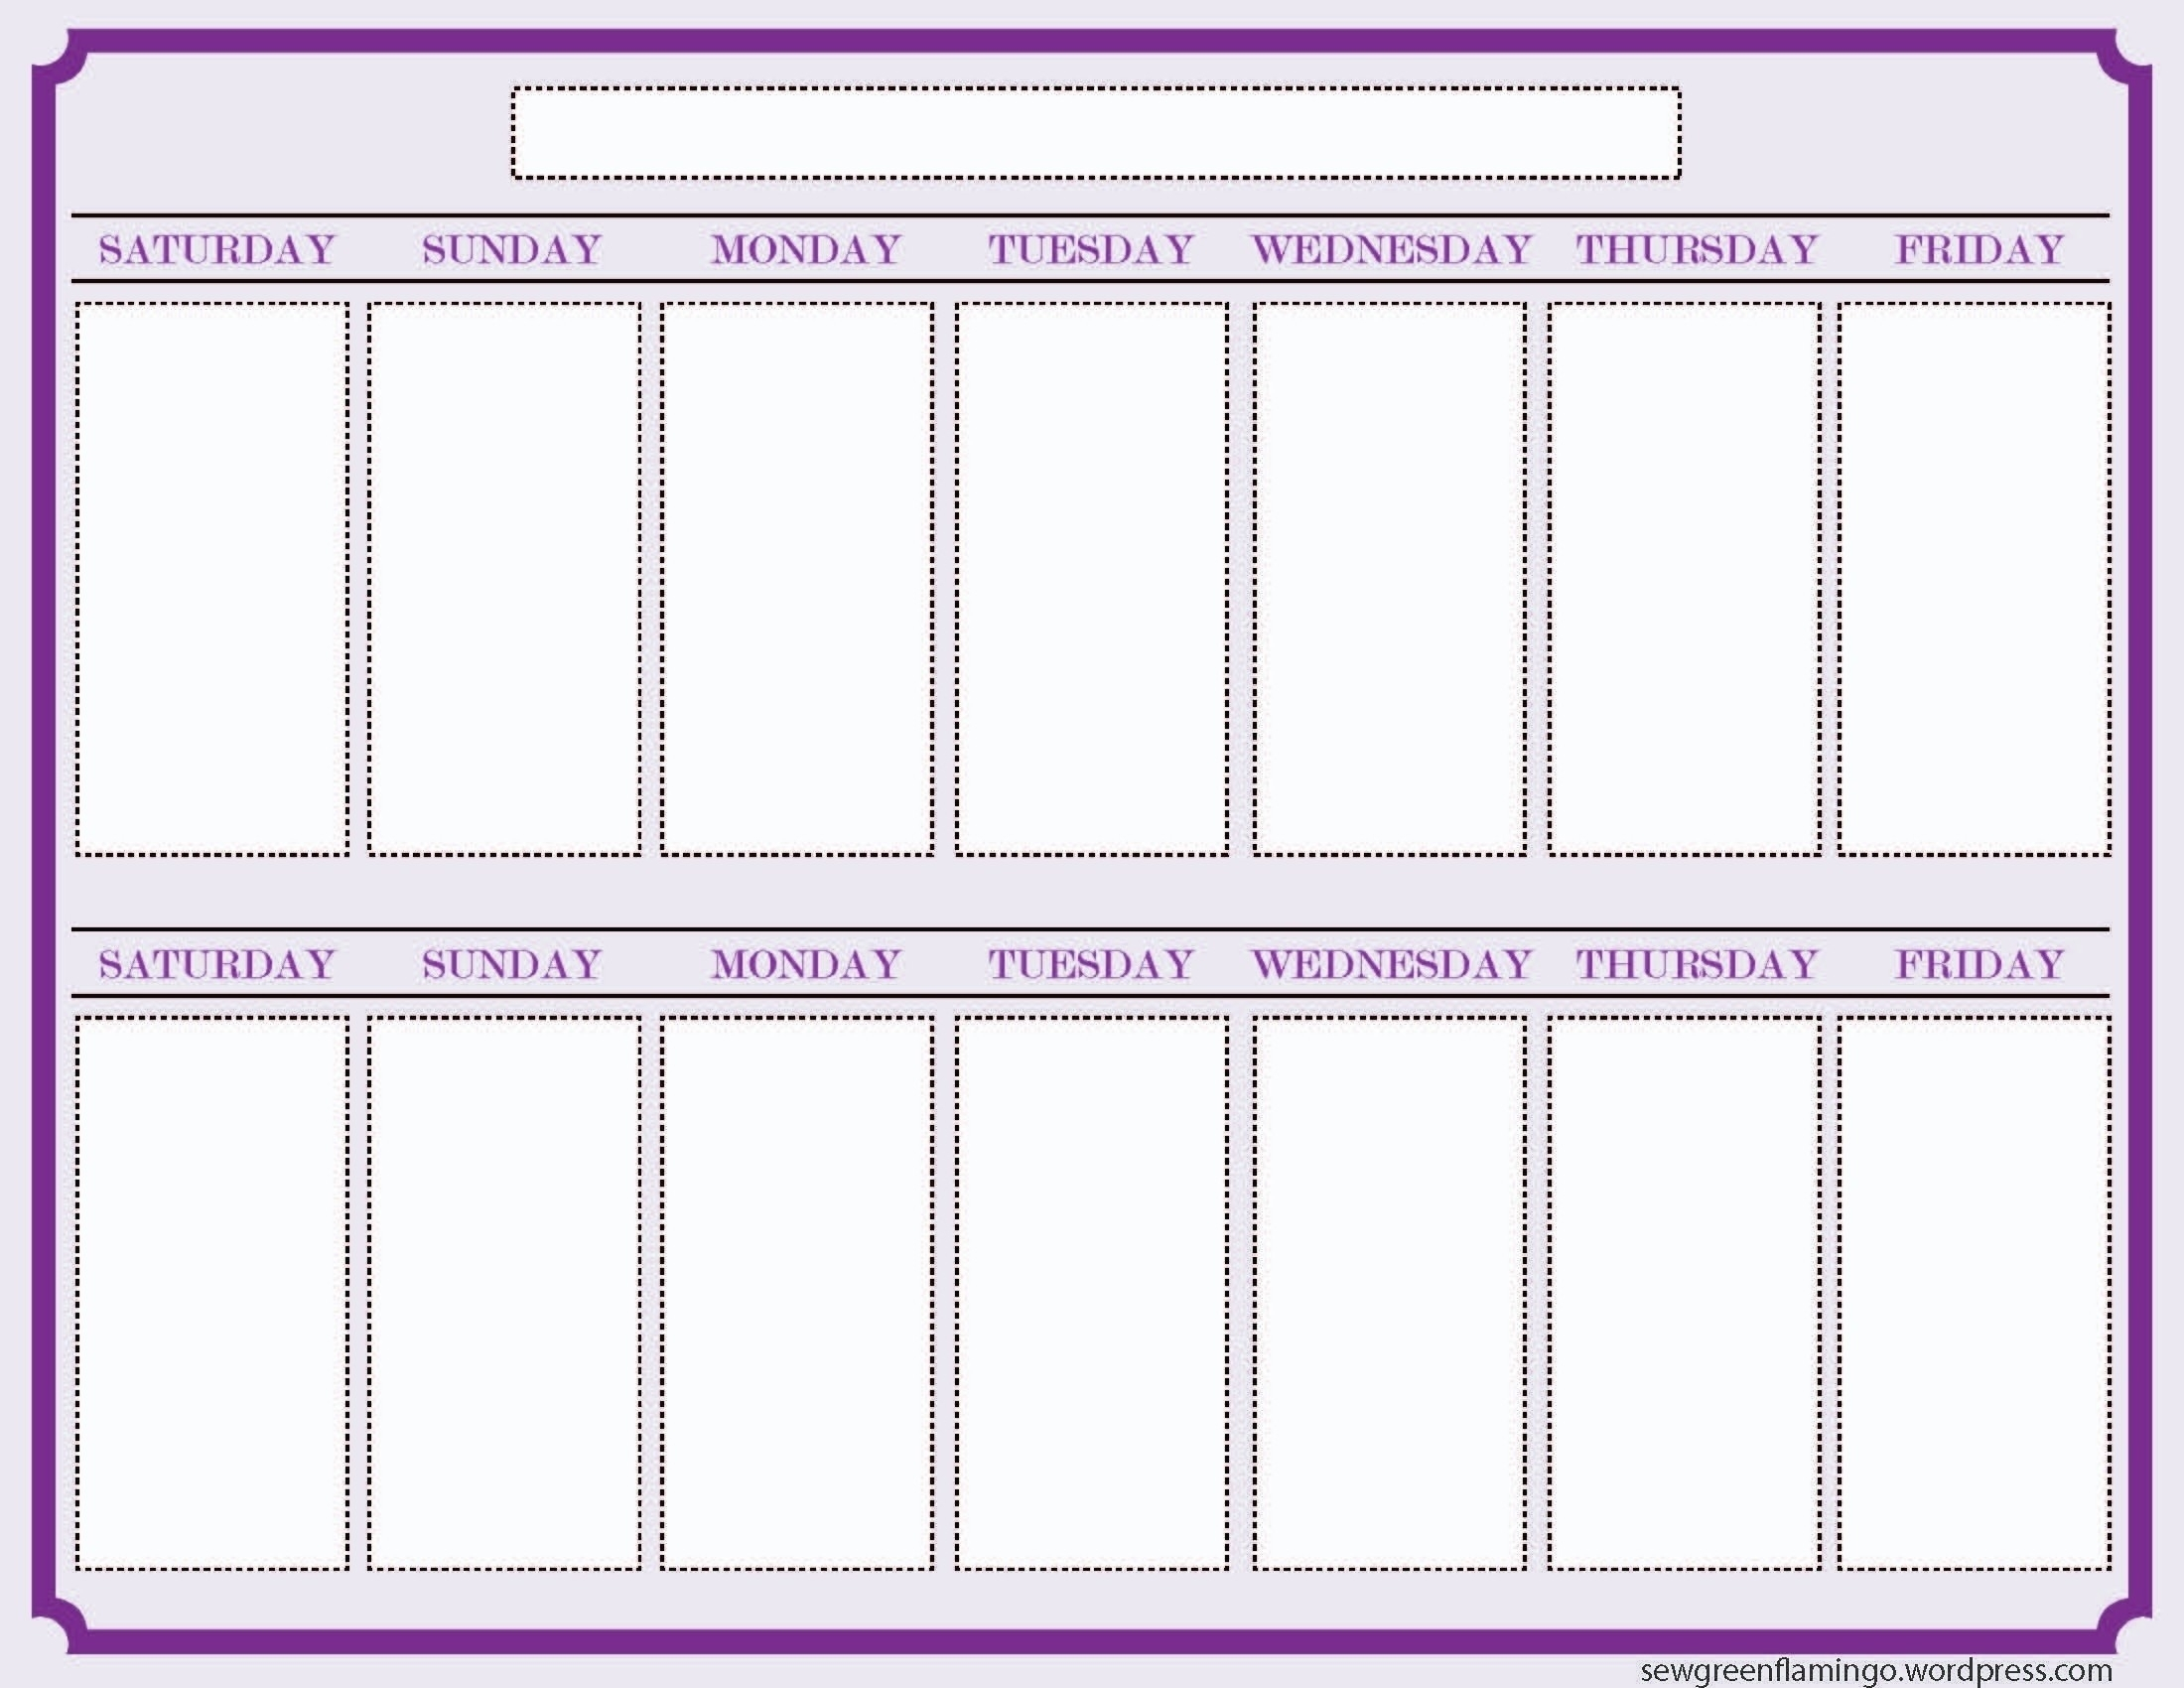 Calendar Template 2 Week Printable 327607 Blank Two Schedule Within with Blank 2 Week Printable Calendar